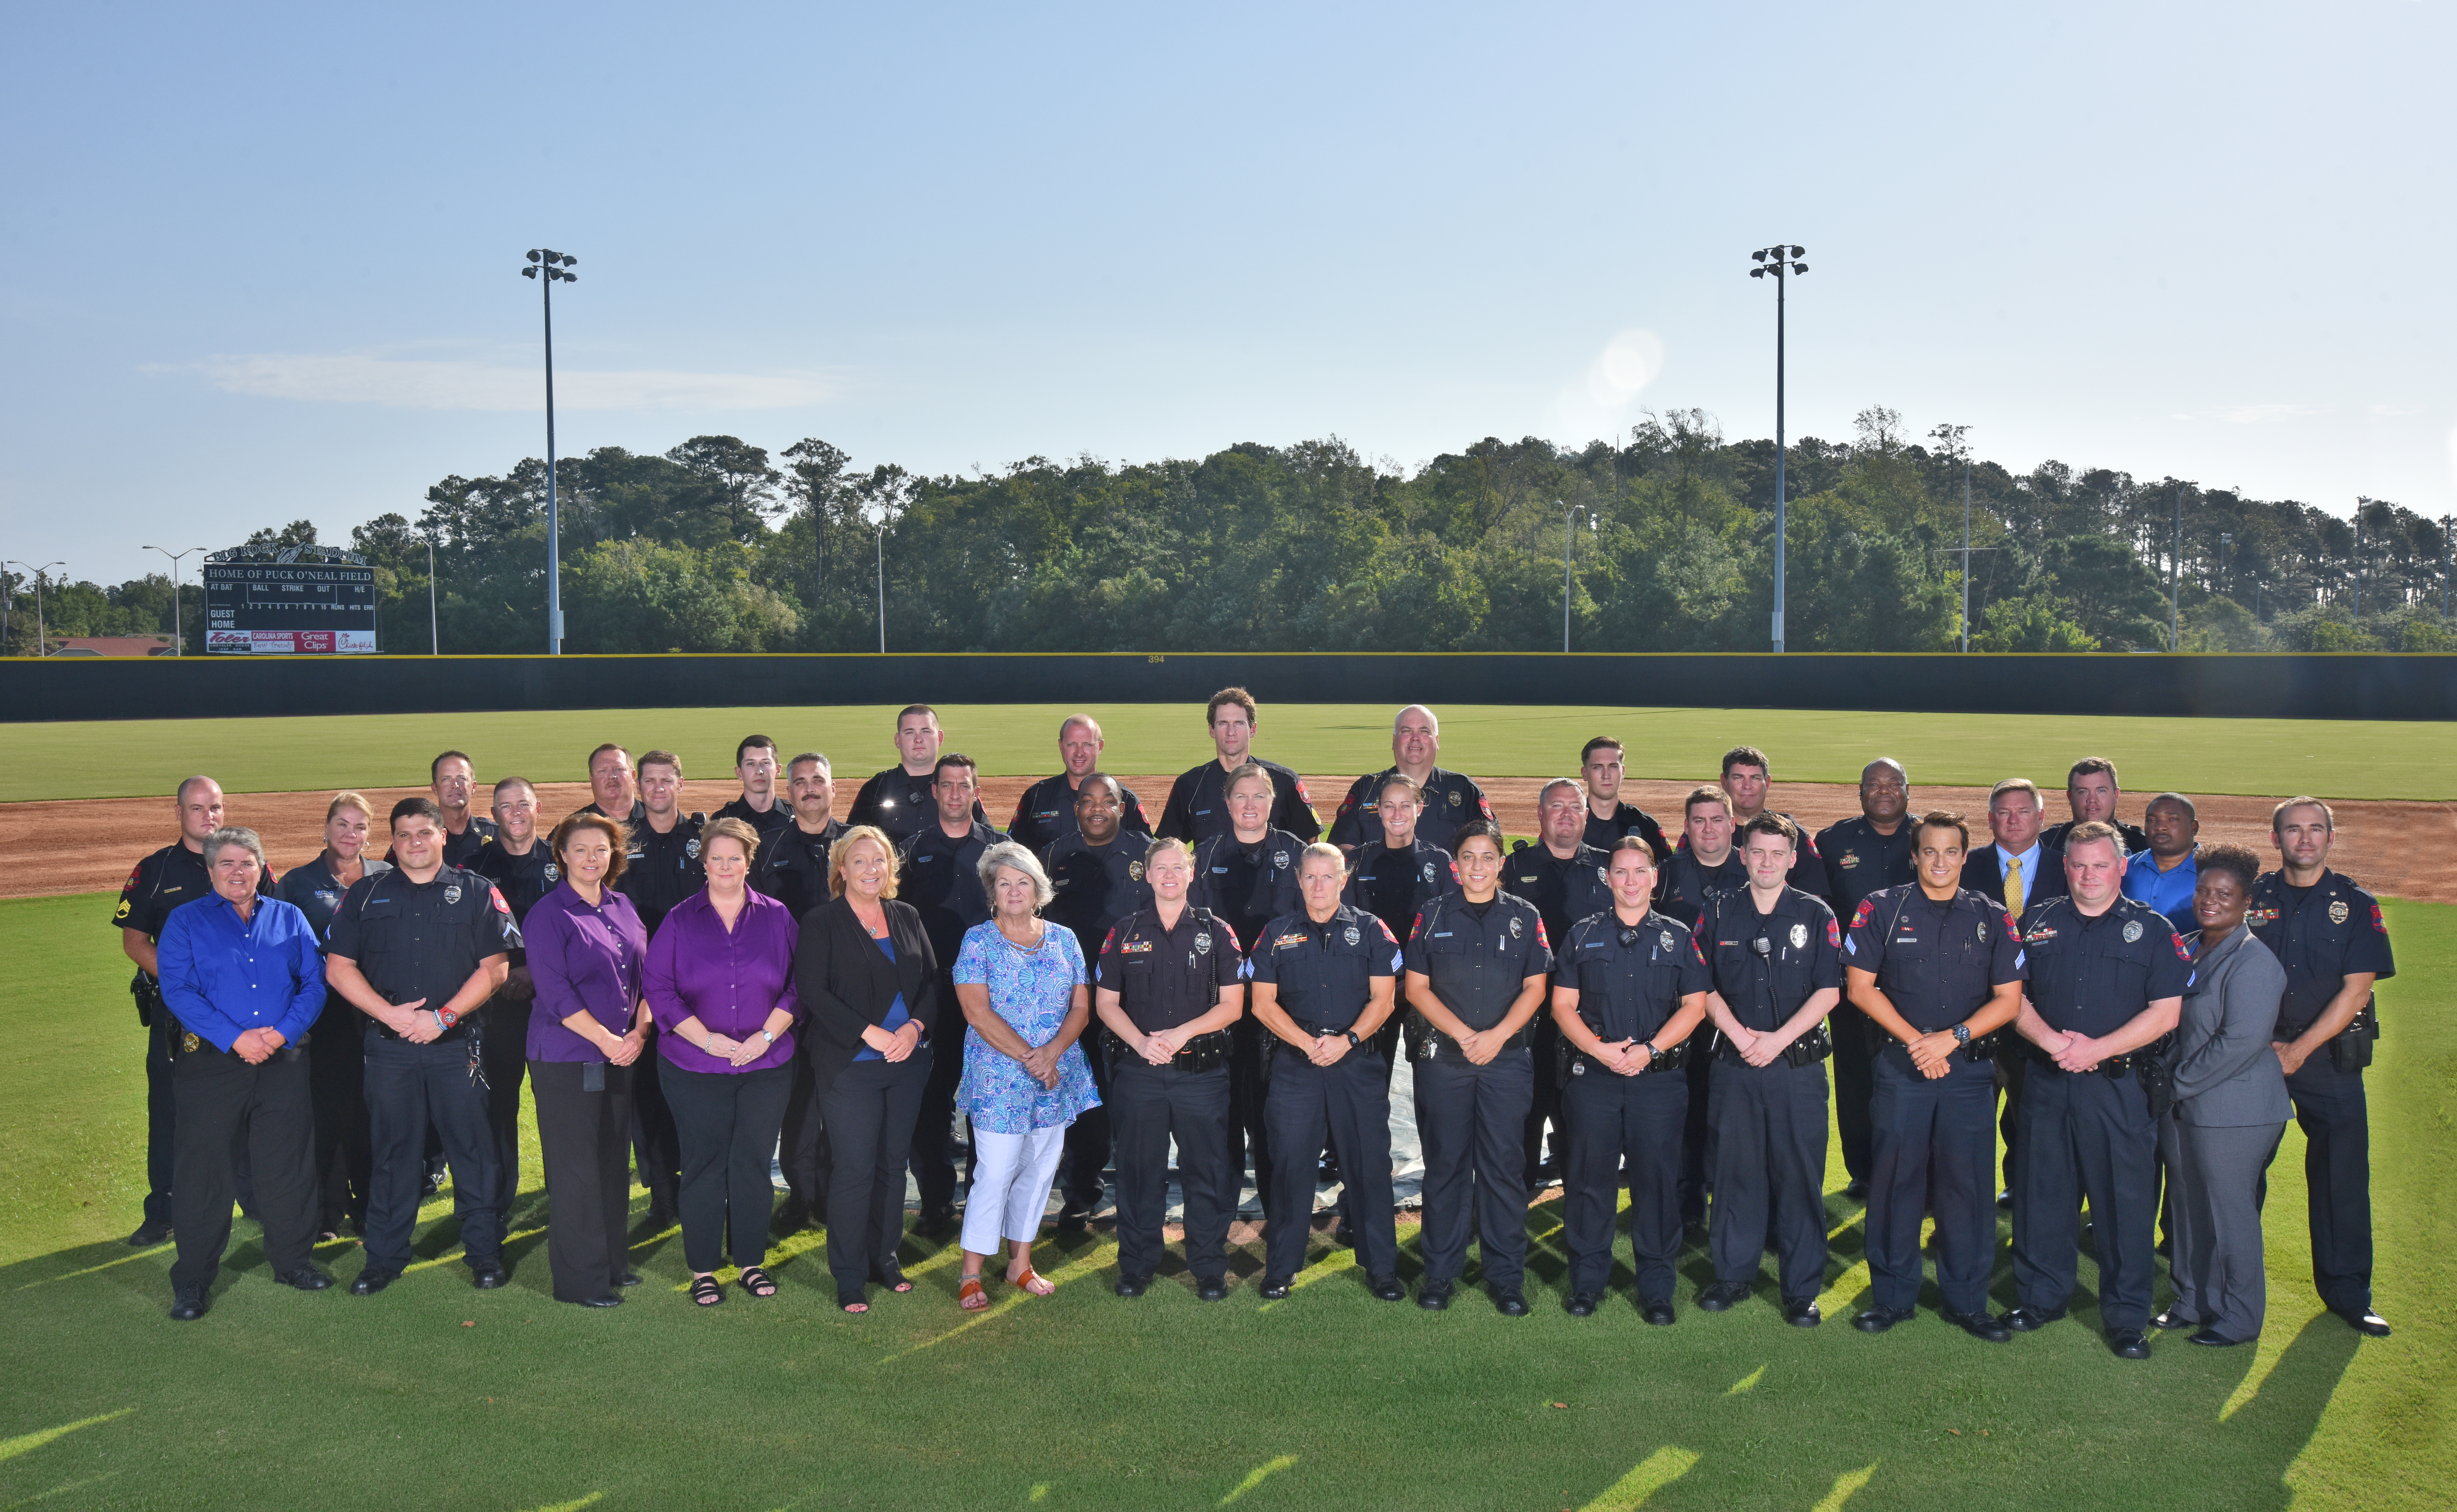 Morehead City Police Group Photo